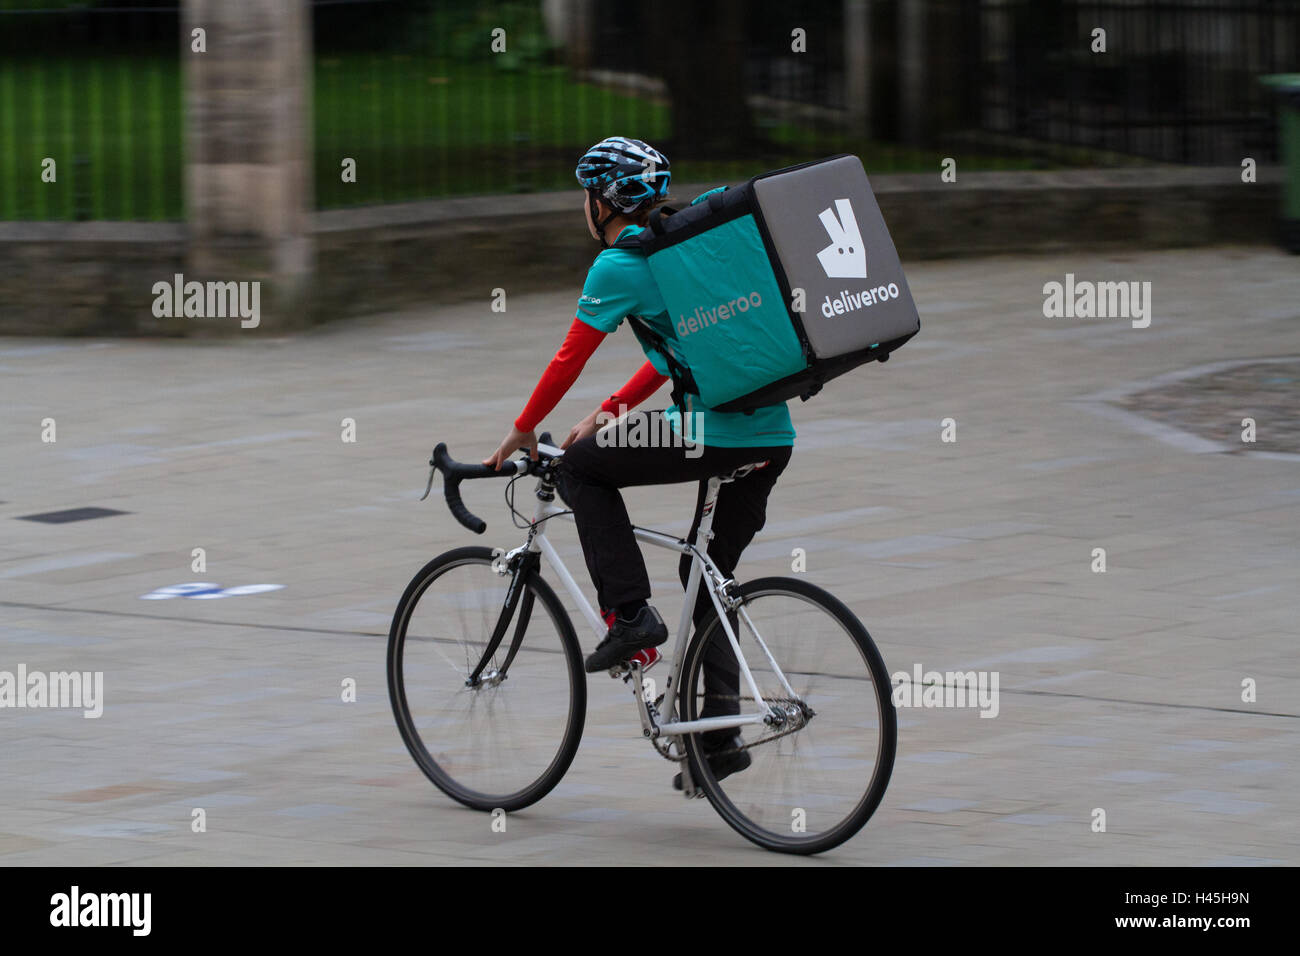 f8bdba06ec7 A Deliveroo cyclist from the increasingly popular hot food and fast food  delivery company cycling through